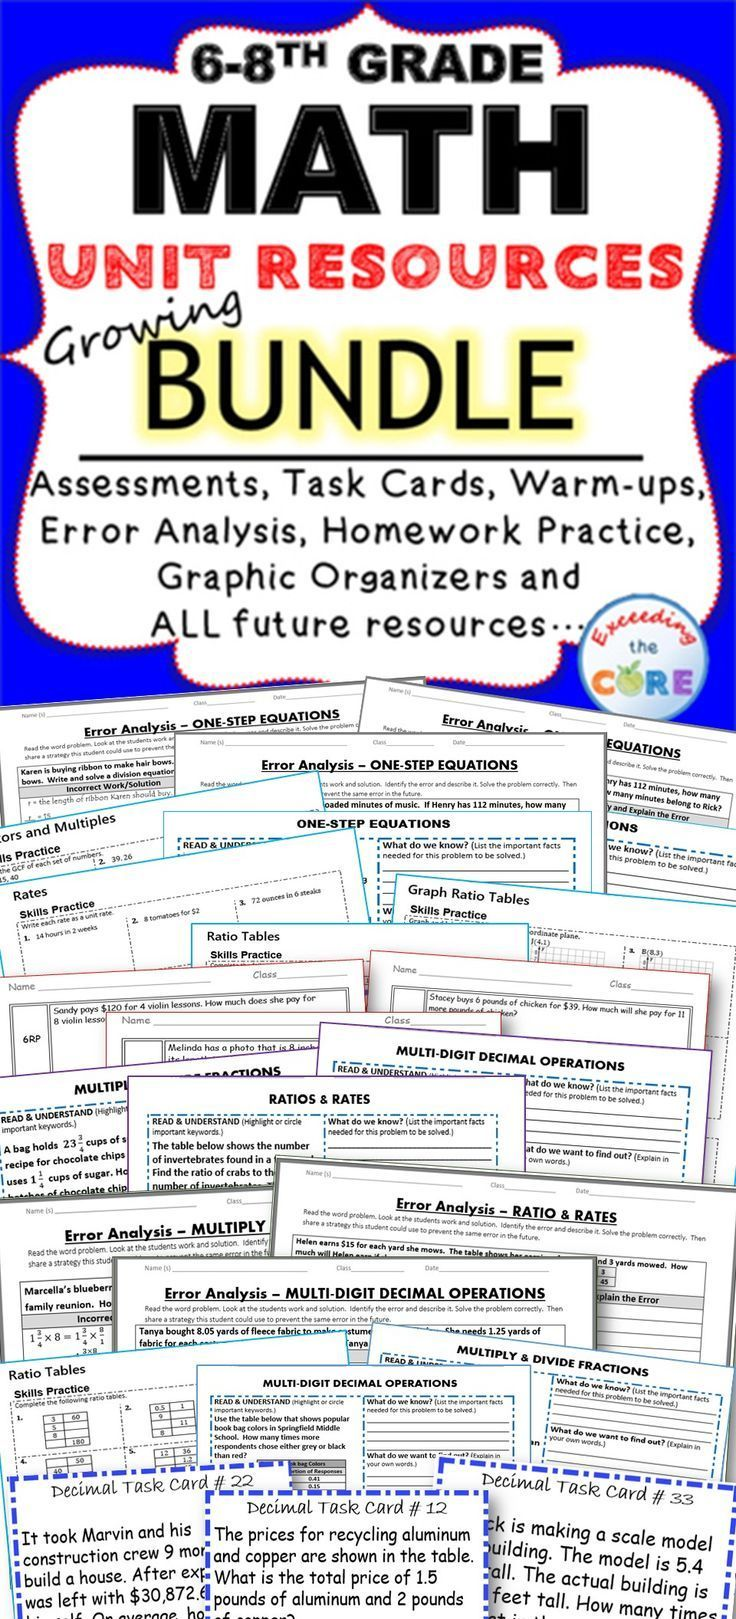 This Middle School Math Growing COMMON CORE MEGA-BUNDLE includes over 50 of my top selling resources (over 500 pages of warm-ups, task cards, error analysis worksheets, problem solving graphic organizers, homework practice worksheets and answer keys).  As a current middle school math teacher, I am using the activities in this growing bundle for WARM UPS, HOMEWORK, math CENTERS, ASSESSMENTS, EXIT TICKETS and TEST PREP .: